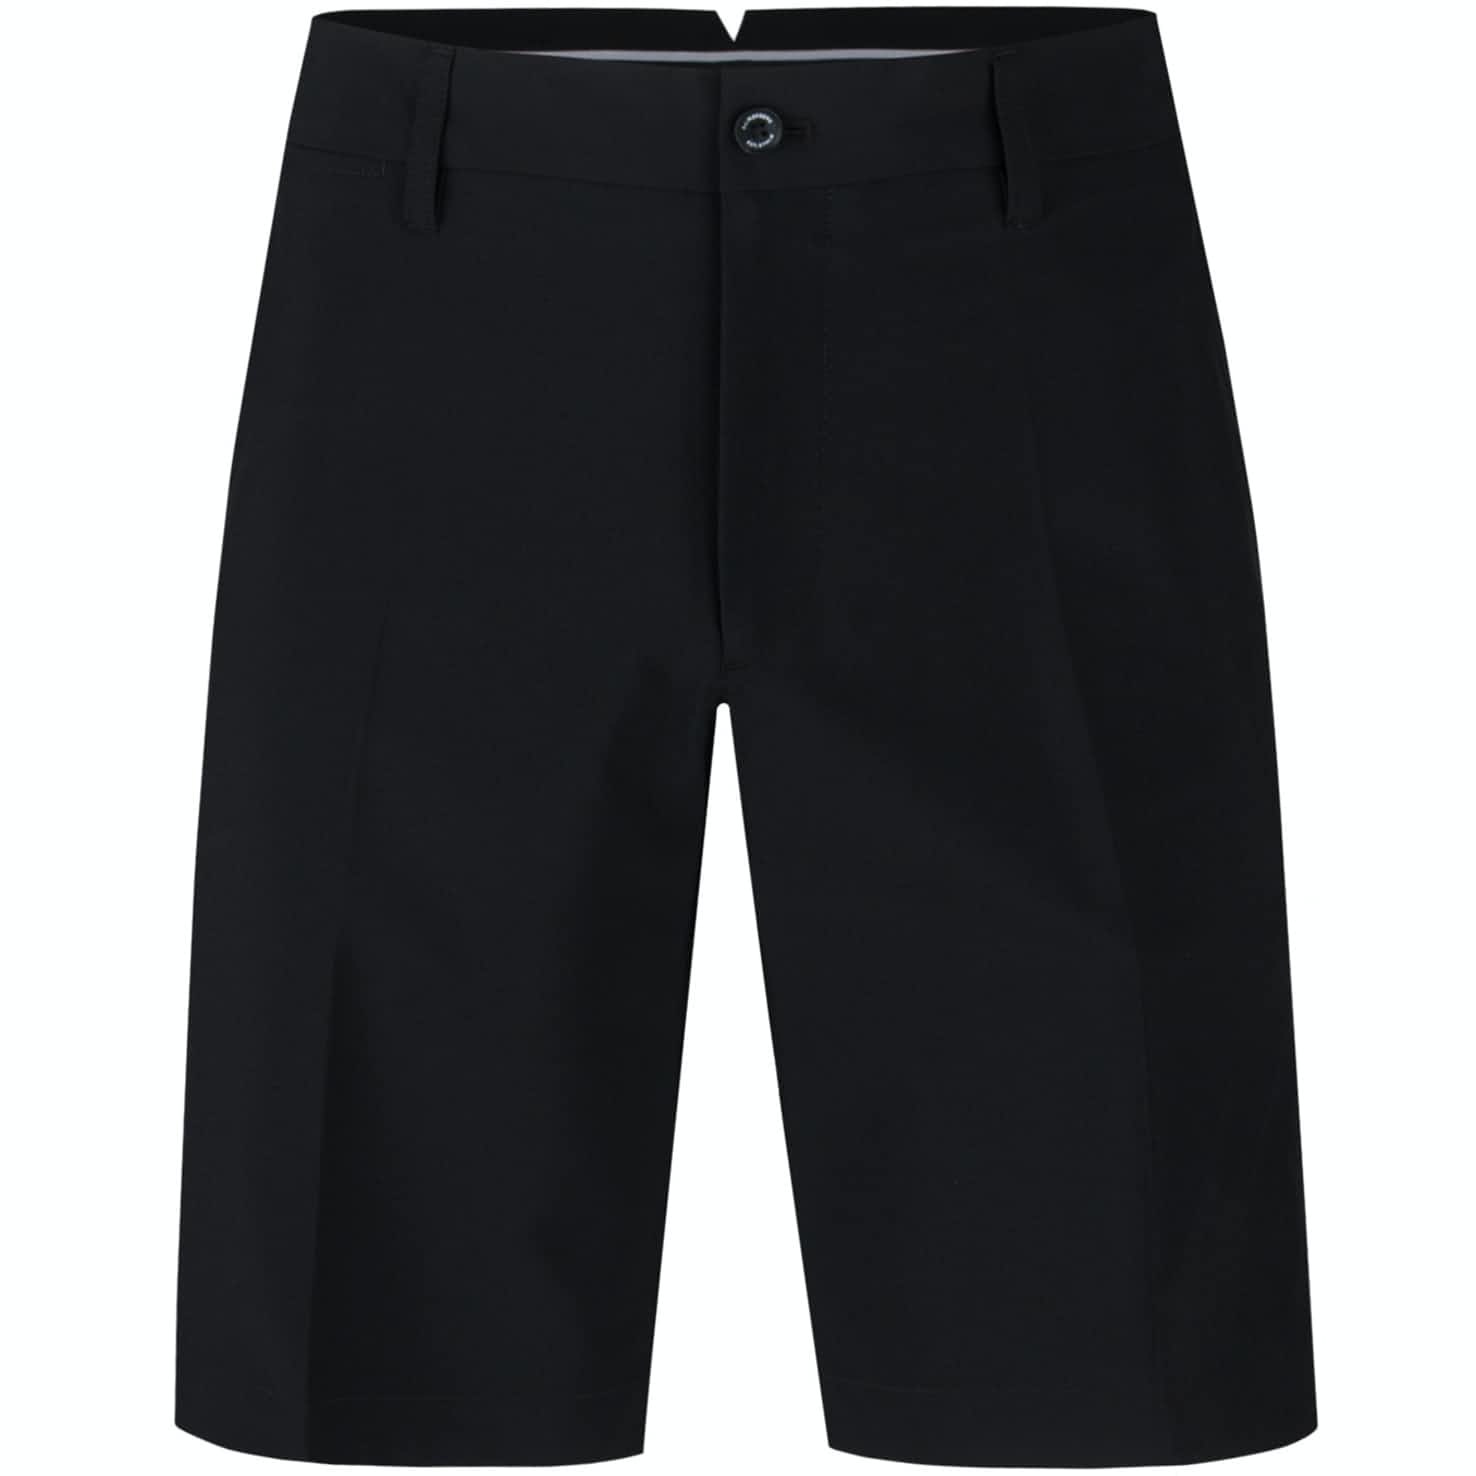 Eloy Tapered Micro Stretch Black - 2020